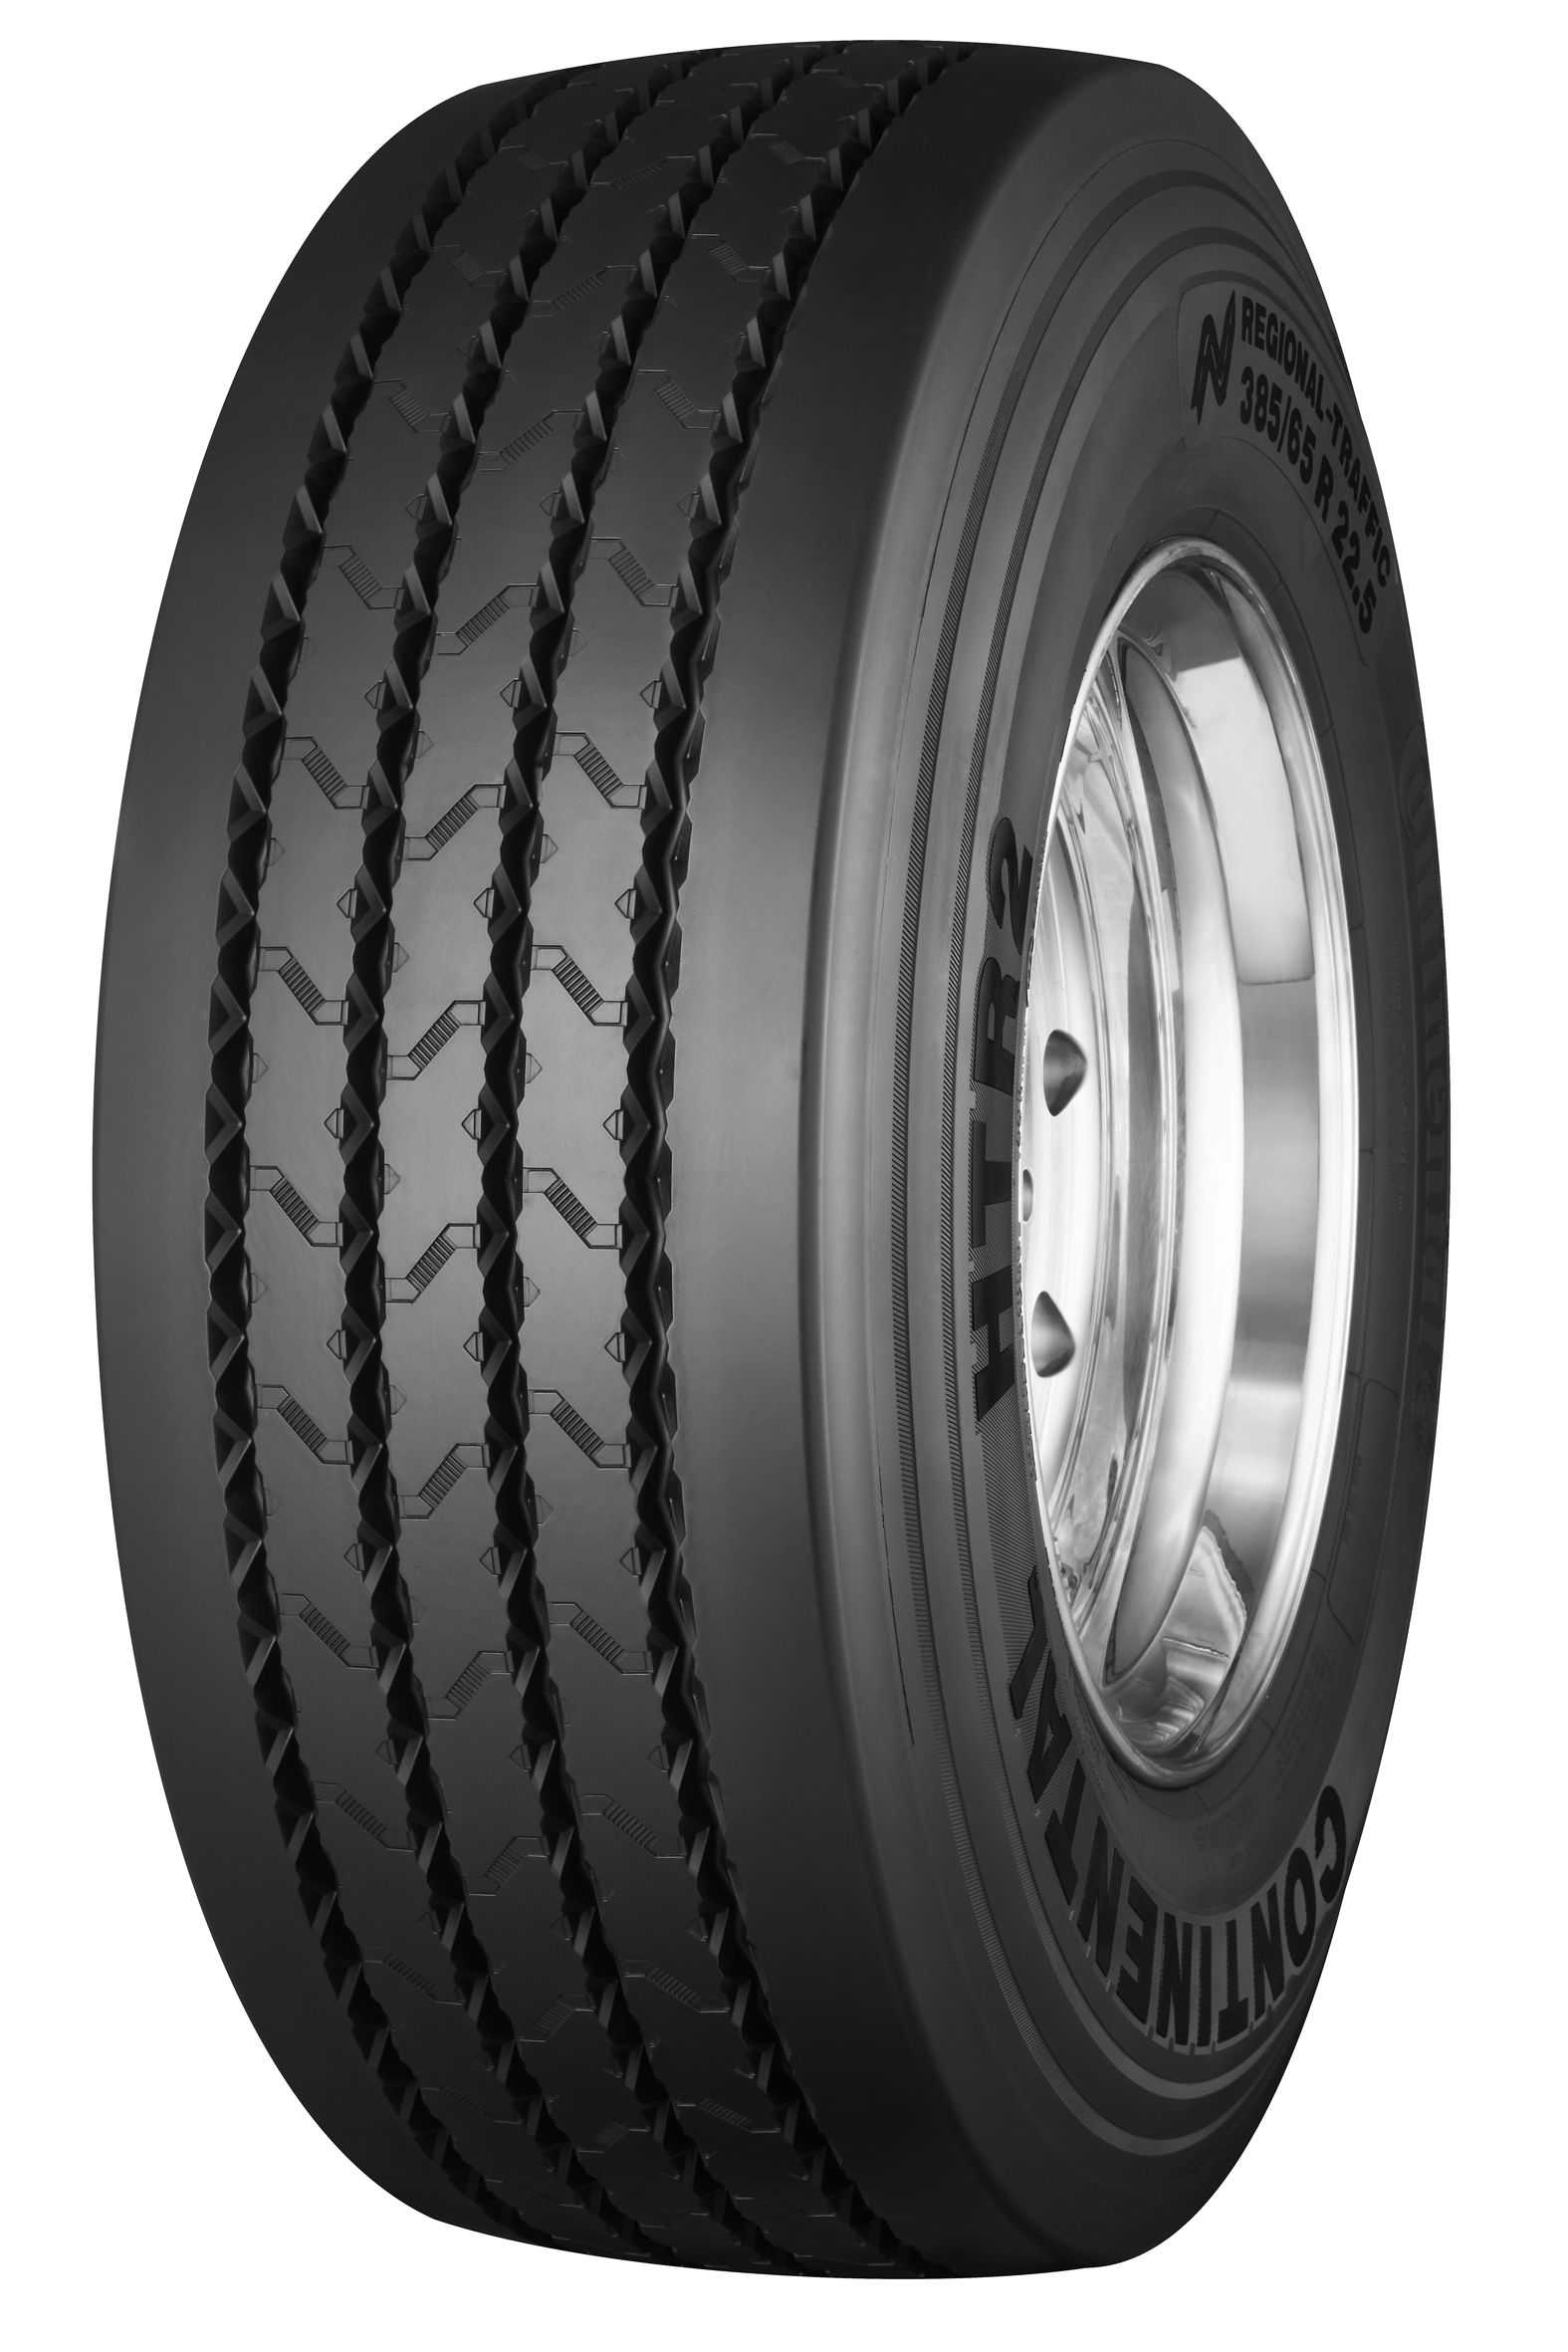 445/65R22.5 169K, Continental, HTR2